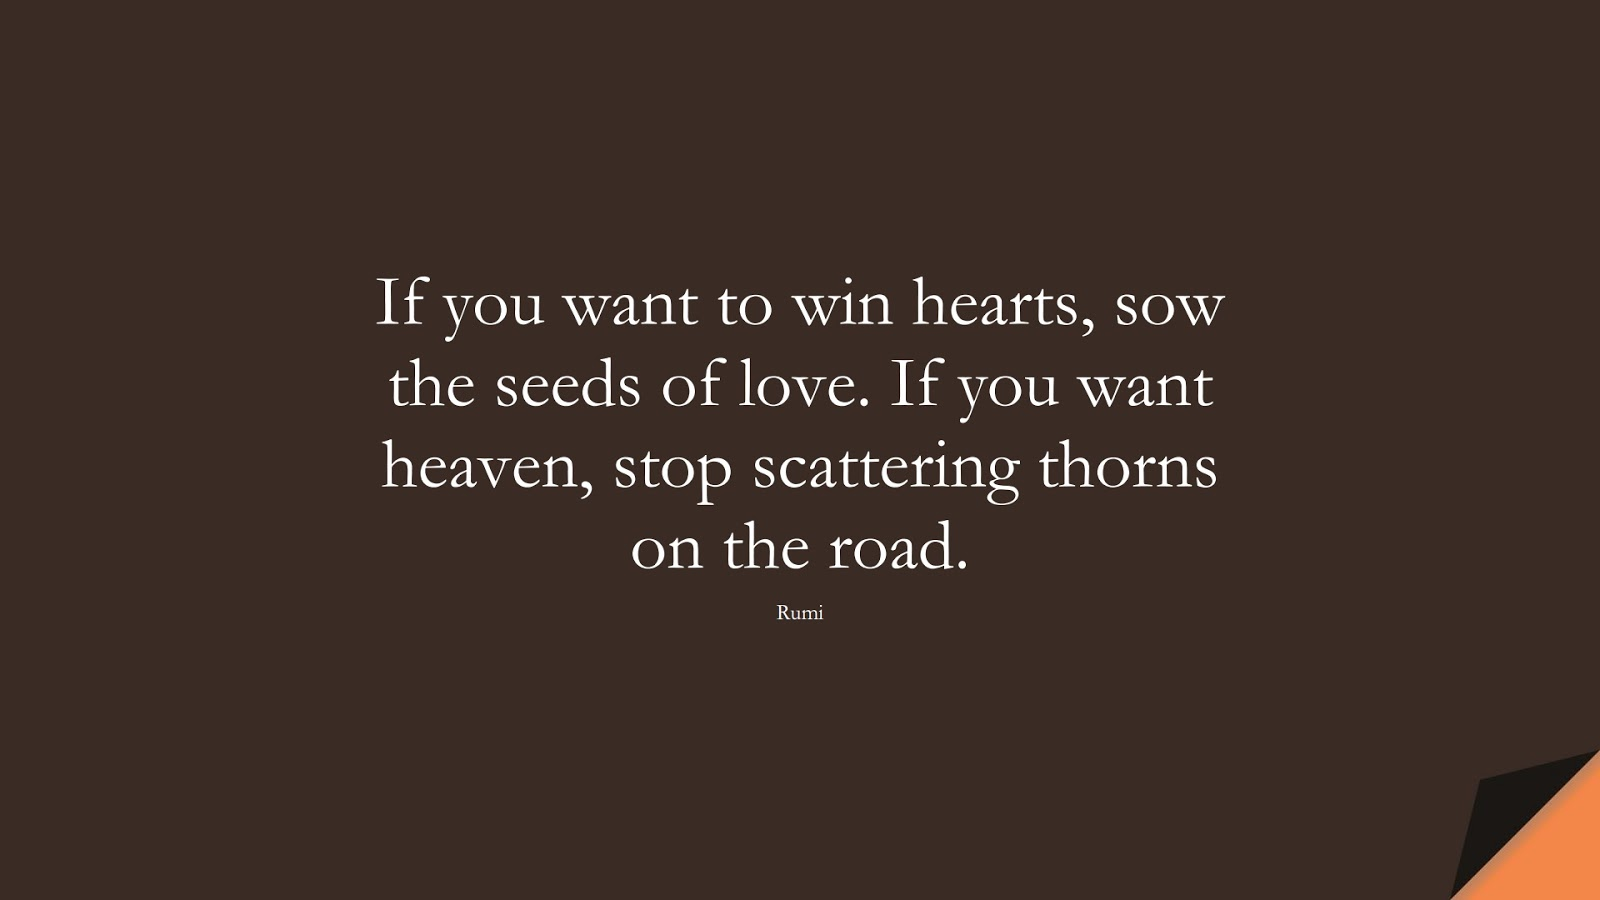 If you want to win hearts, sow the seeds of love. If you want heaven, stop scattering thorns on the road. (Rumi);  #RumiQuotes